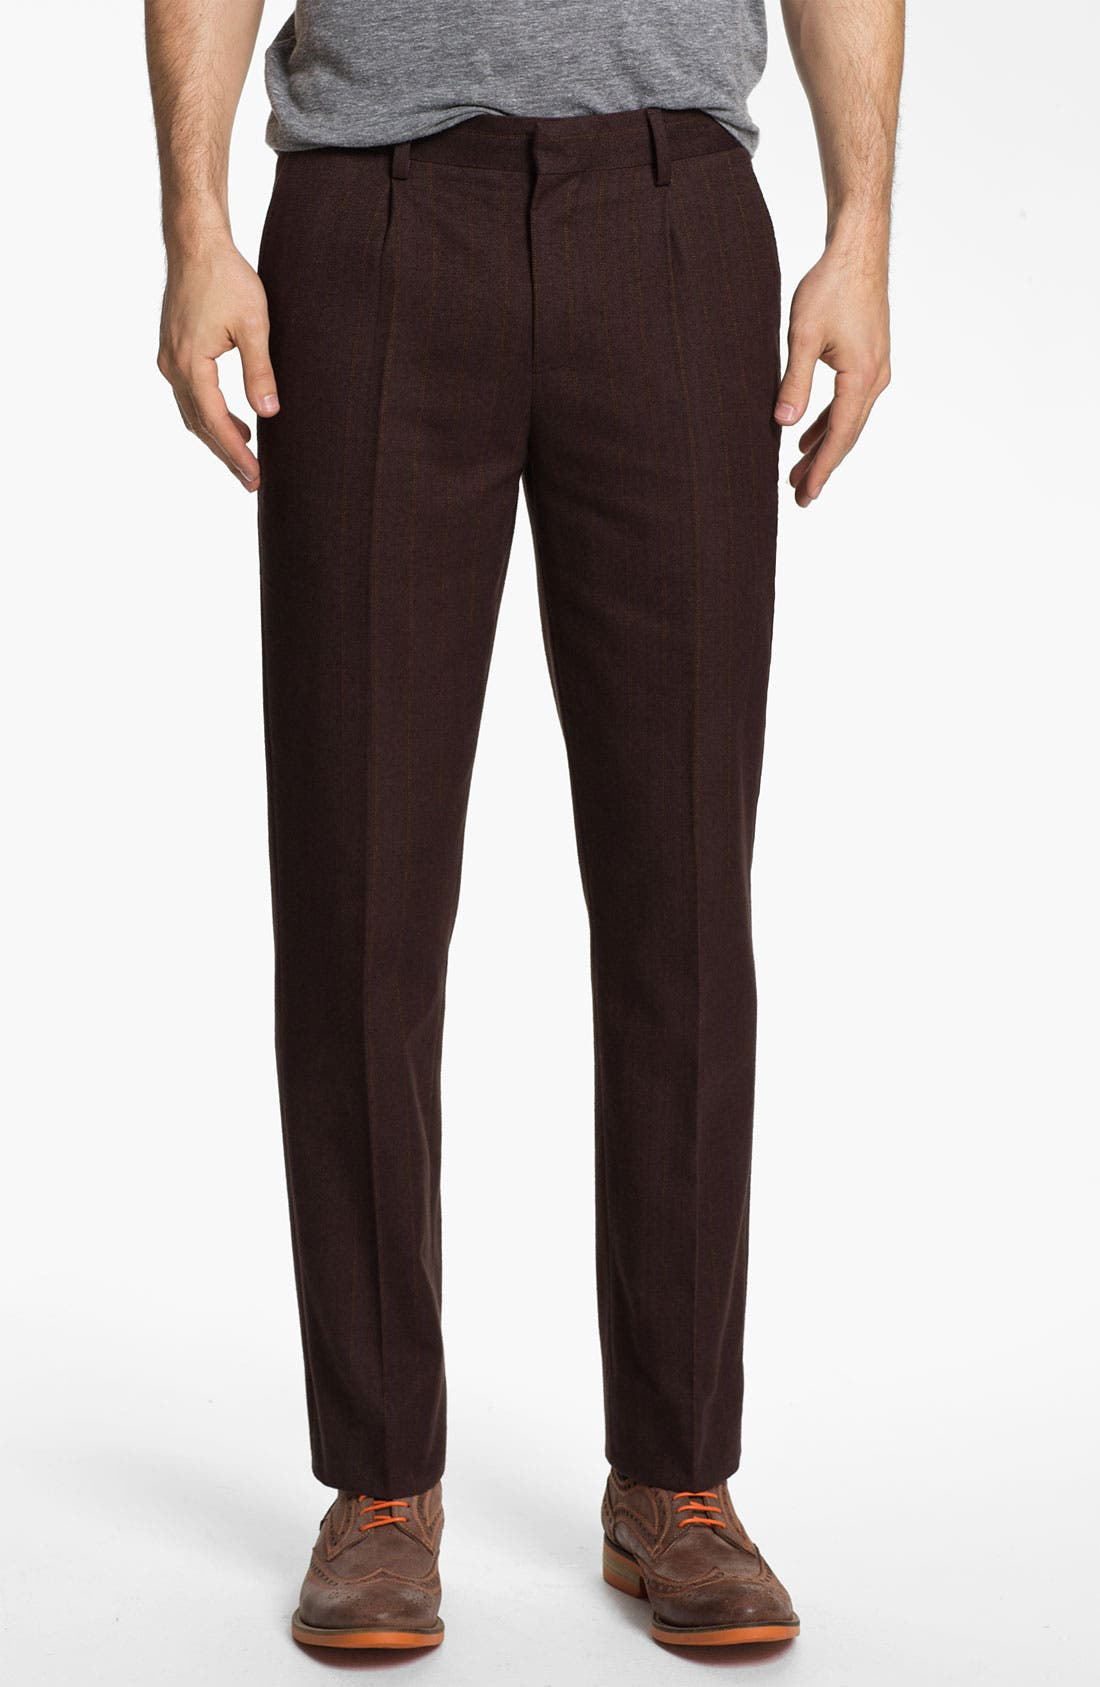 Main Image - 1901 Slim Pleated Trousers